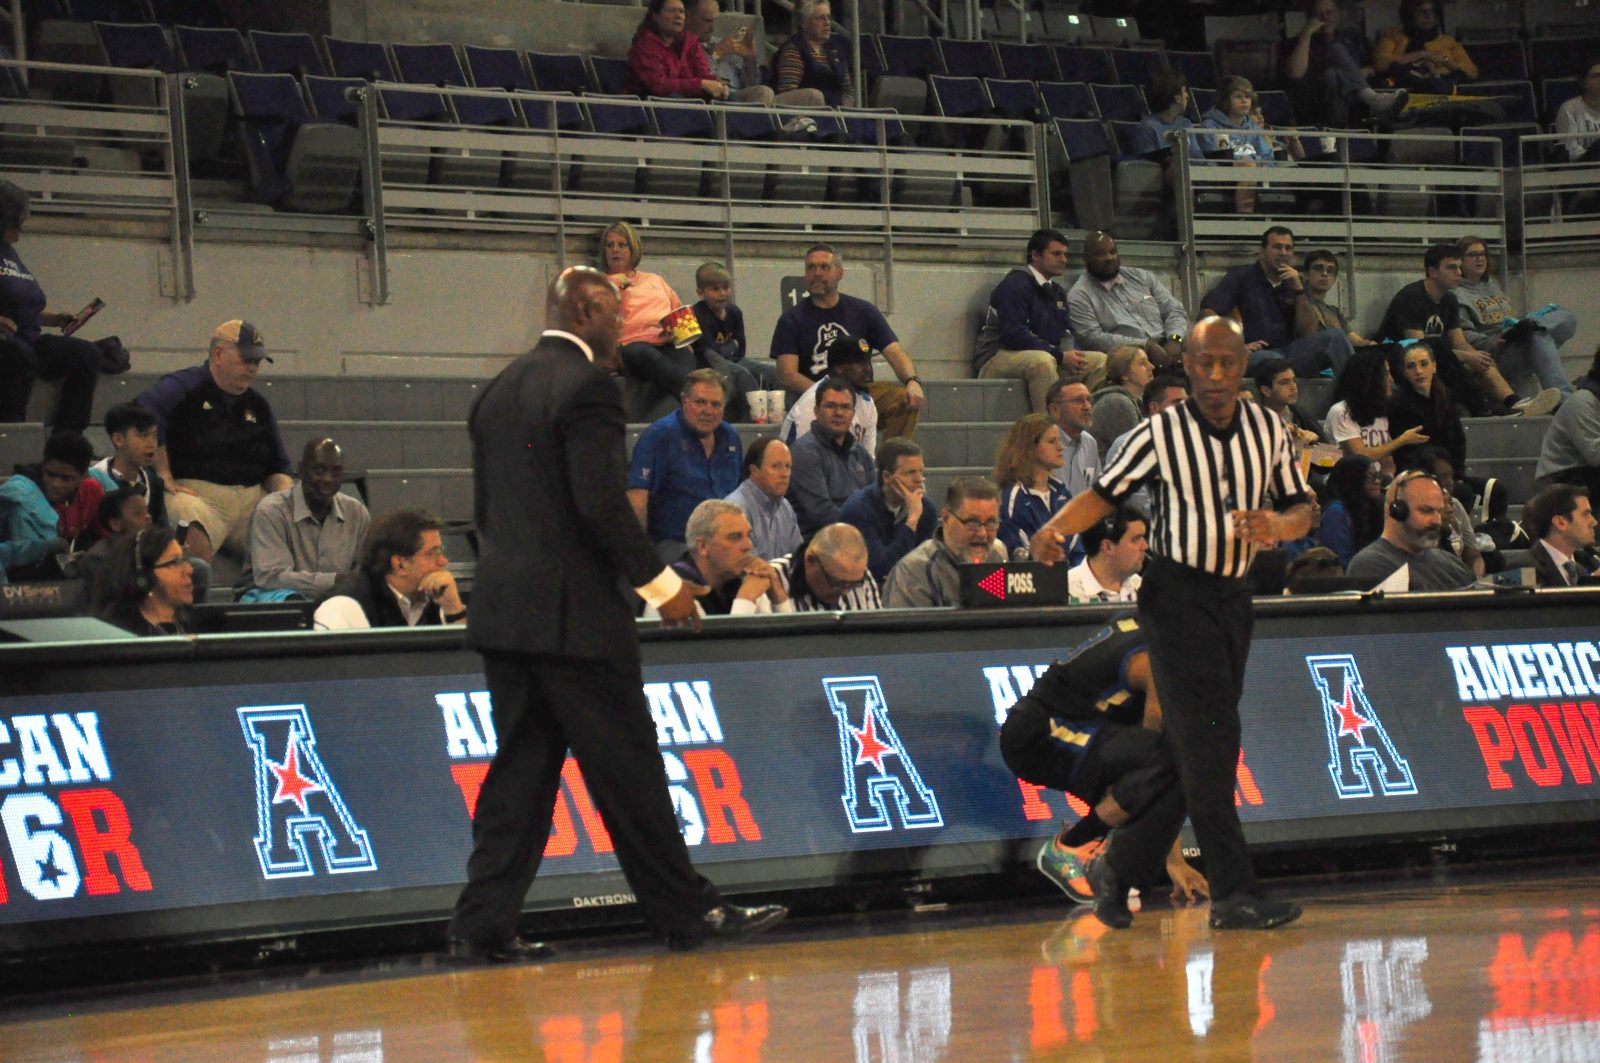 Pirates interim coach Michael Perry has a question for the official after ECU freshman Dimitri Spasojevic picked up his fourth foul. (Photo by Al Myatt)